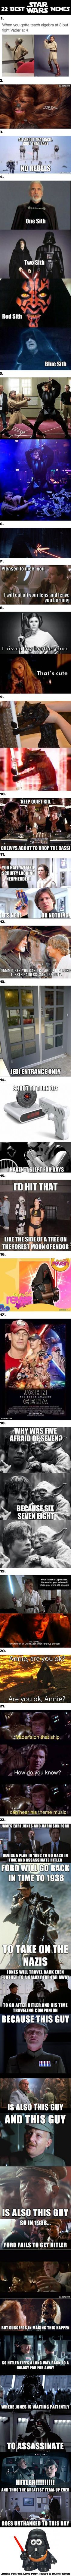 The very best of Star Wars memes Tis the Season for The Force Awakens - Check out CrazyBobsToyReviews.com